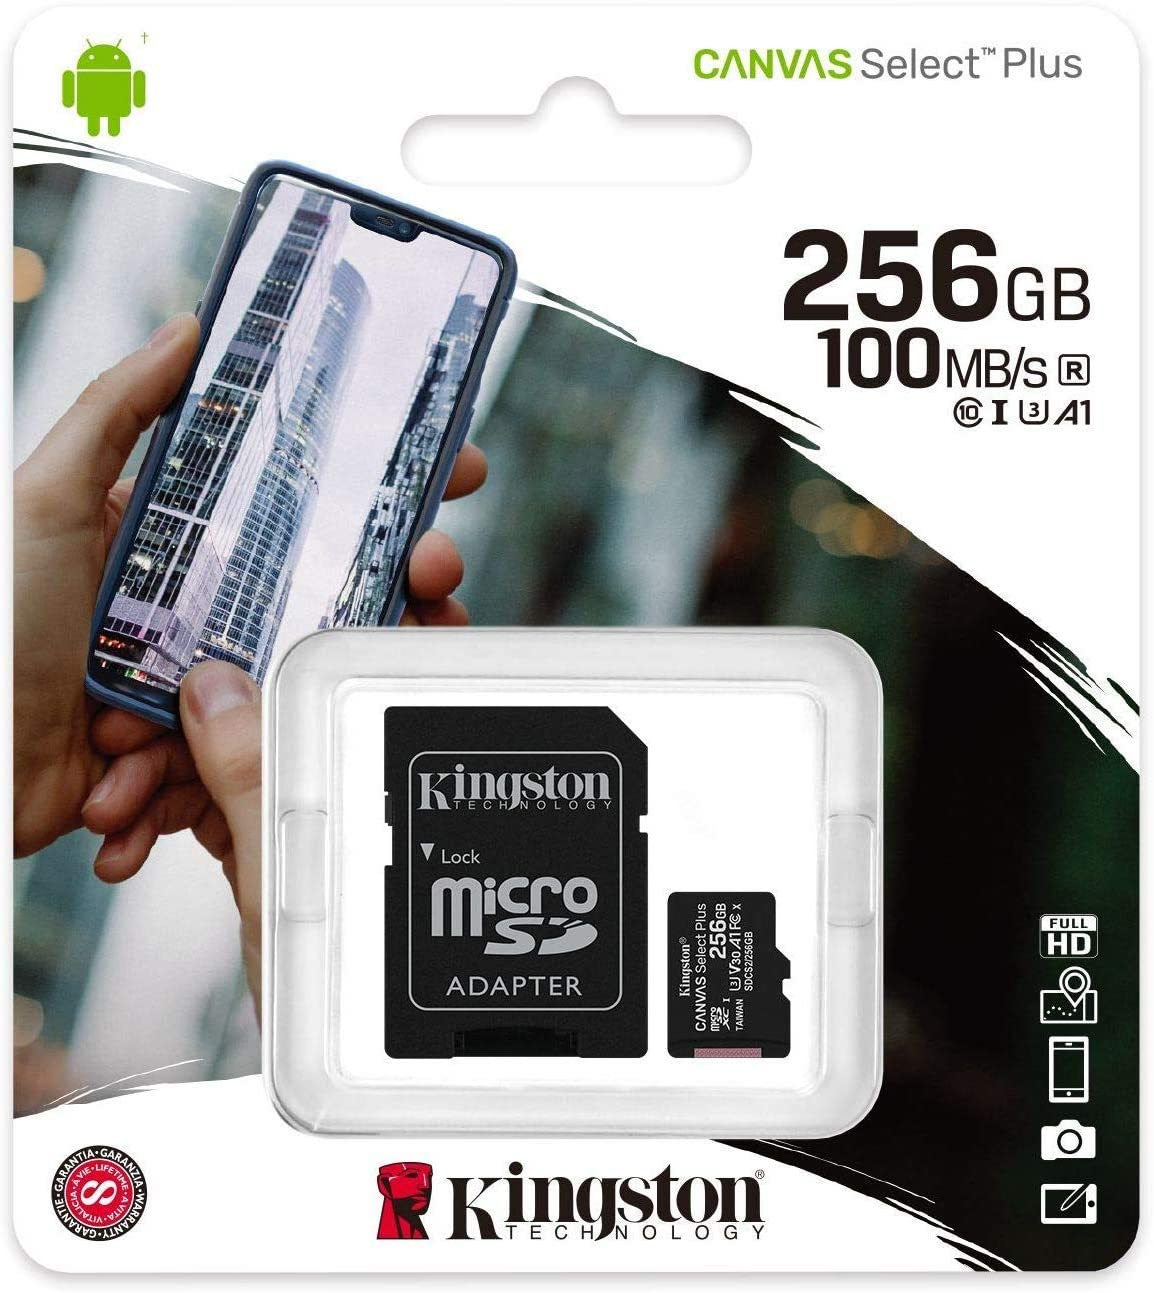 Kingston 256GB Microsoft Surface Pro 3 64GB MicroSDXC Canvas Select Plus Card Verified by SanFlash. 100MBs Works with Kingston